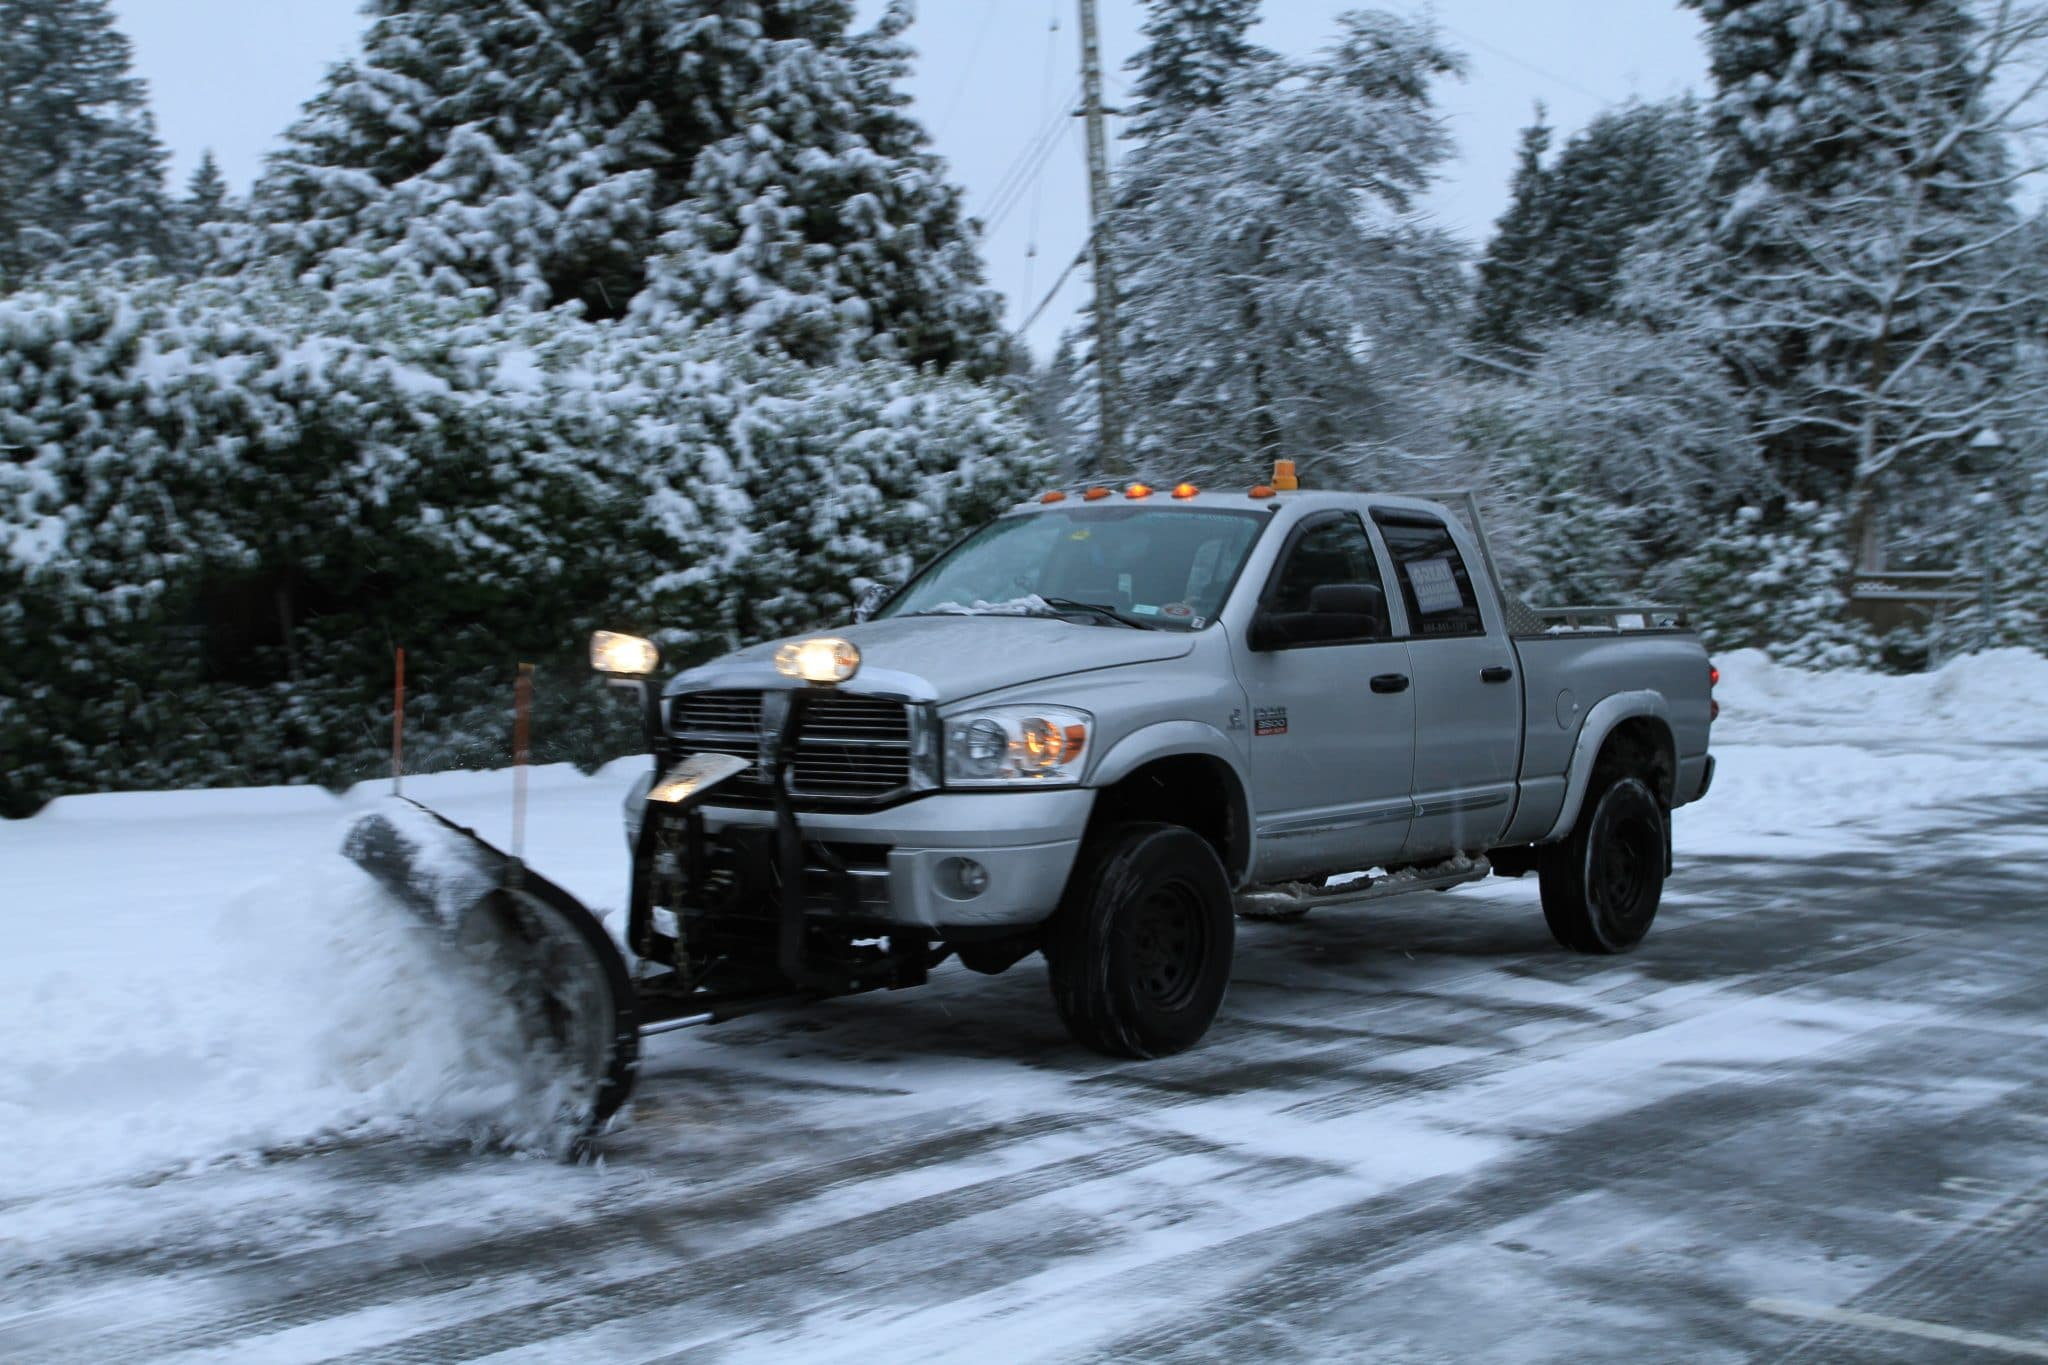 Snow Clearing and De-Icing Services